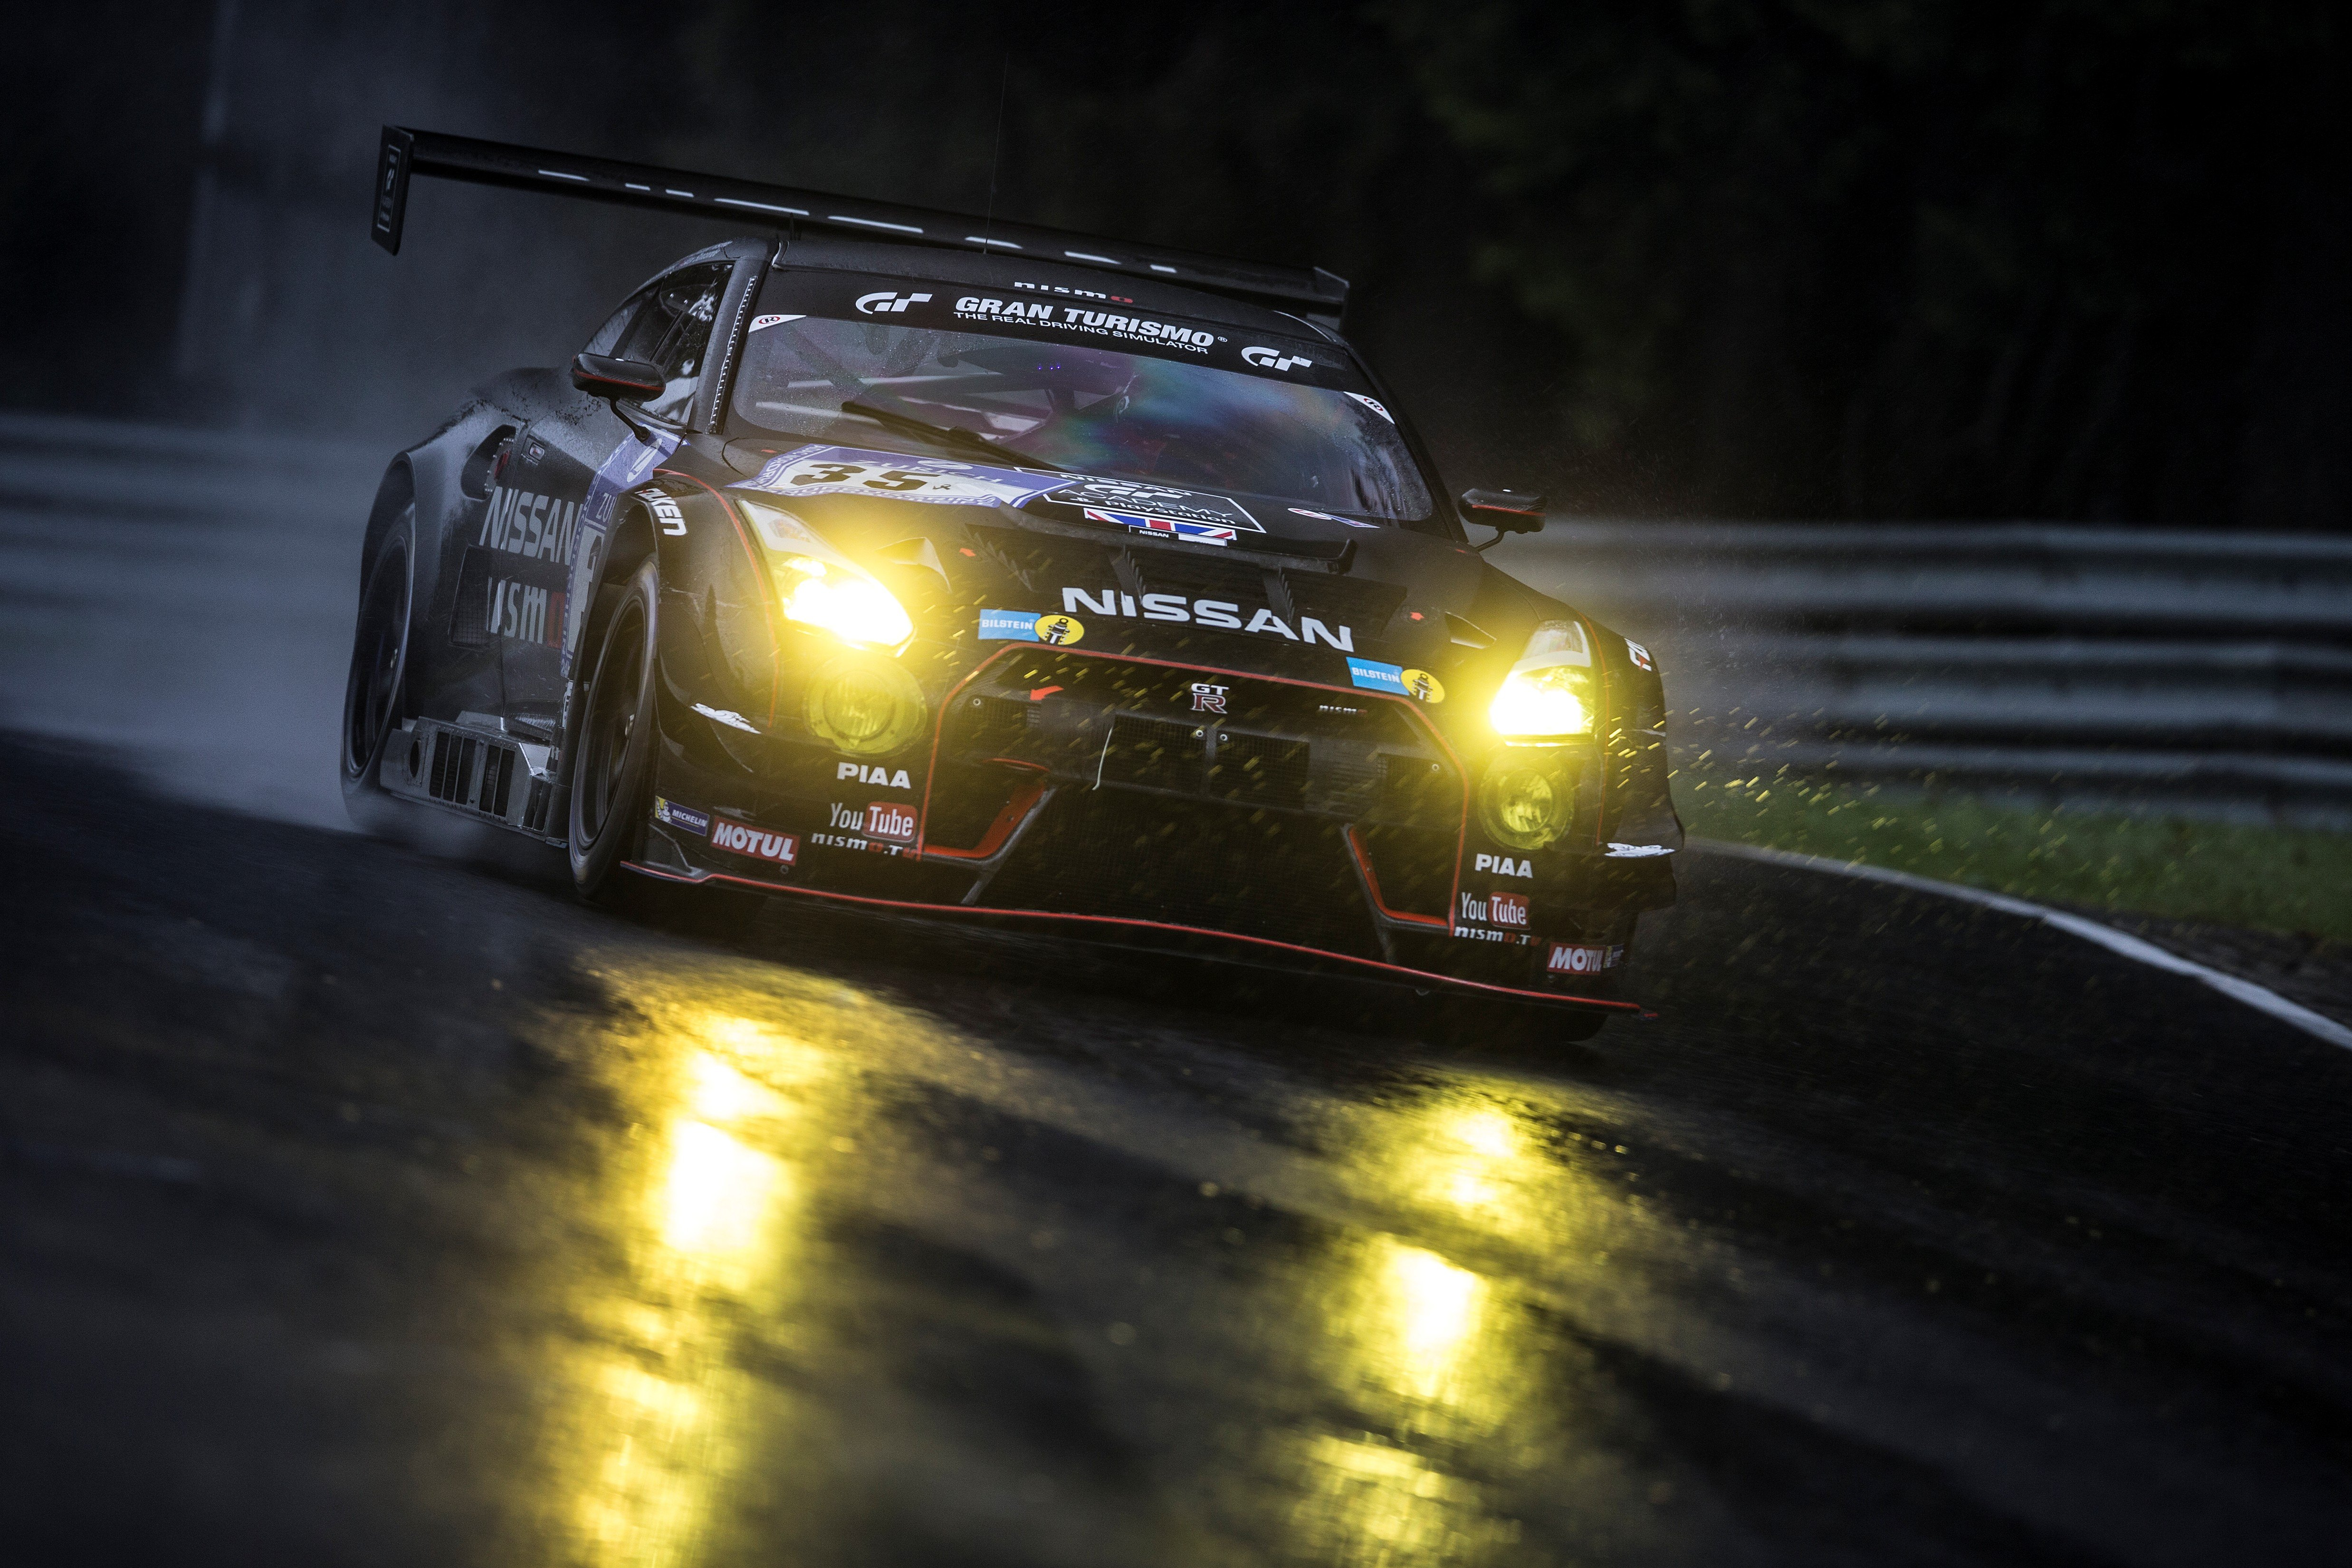 Nissan drivers warming up for the 24 Hours of Le Mans ...